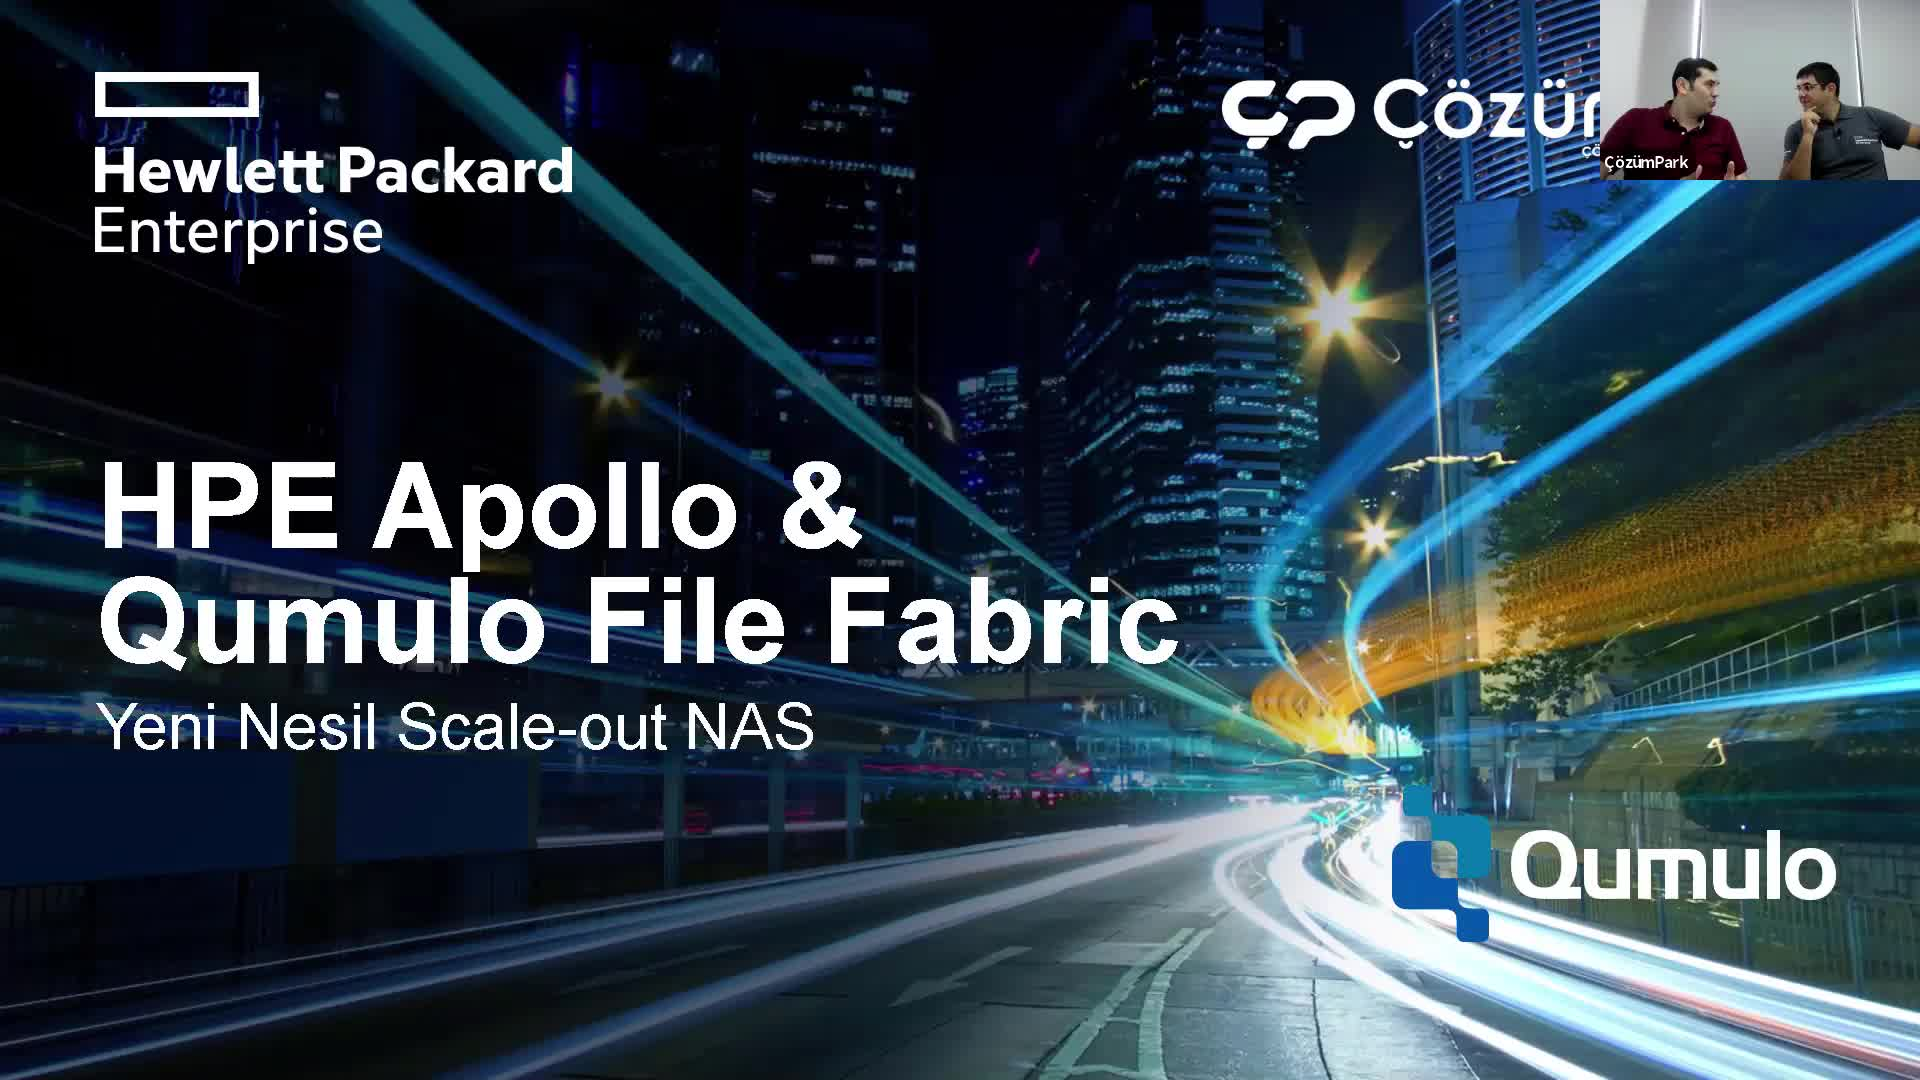 HPE Apollo - Qumulo File Fabric - Yeni Nesil Scale-out NAS